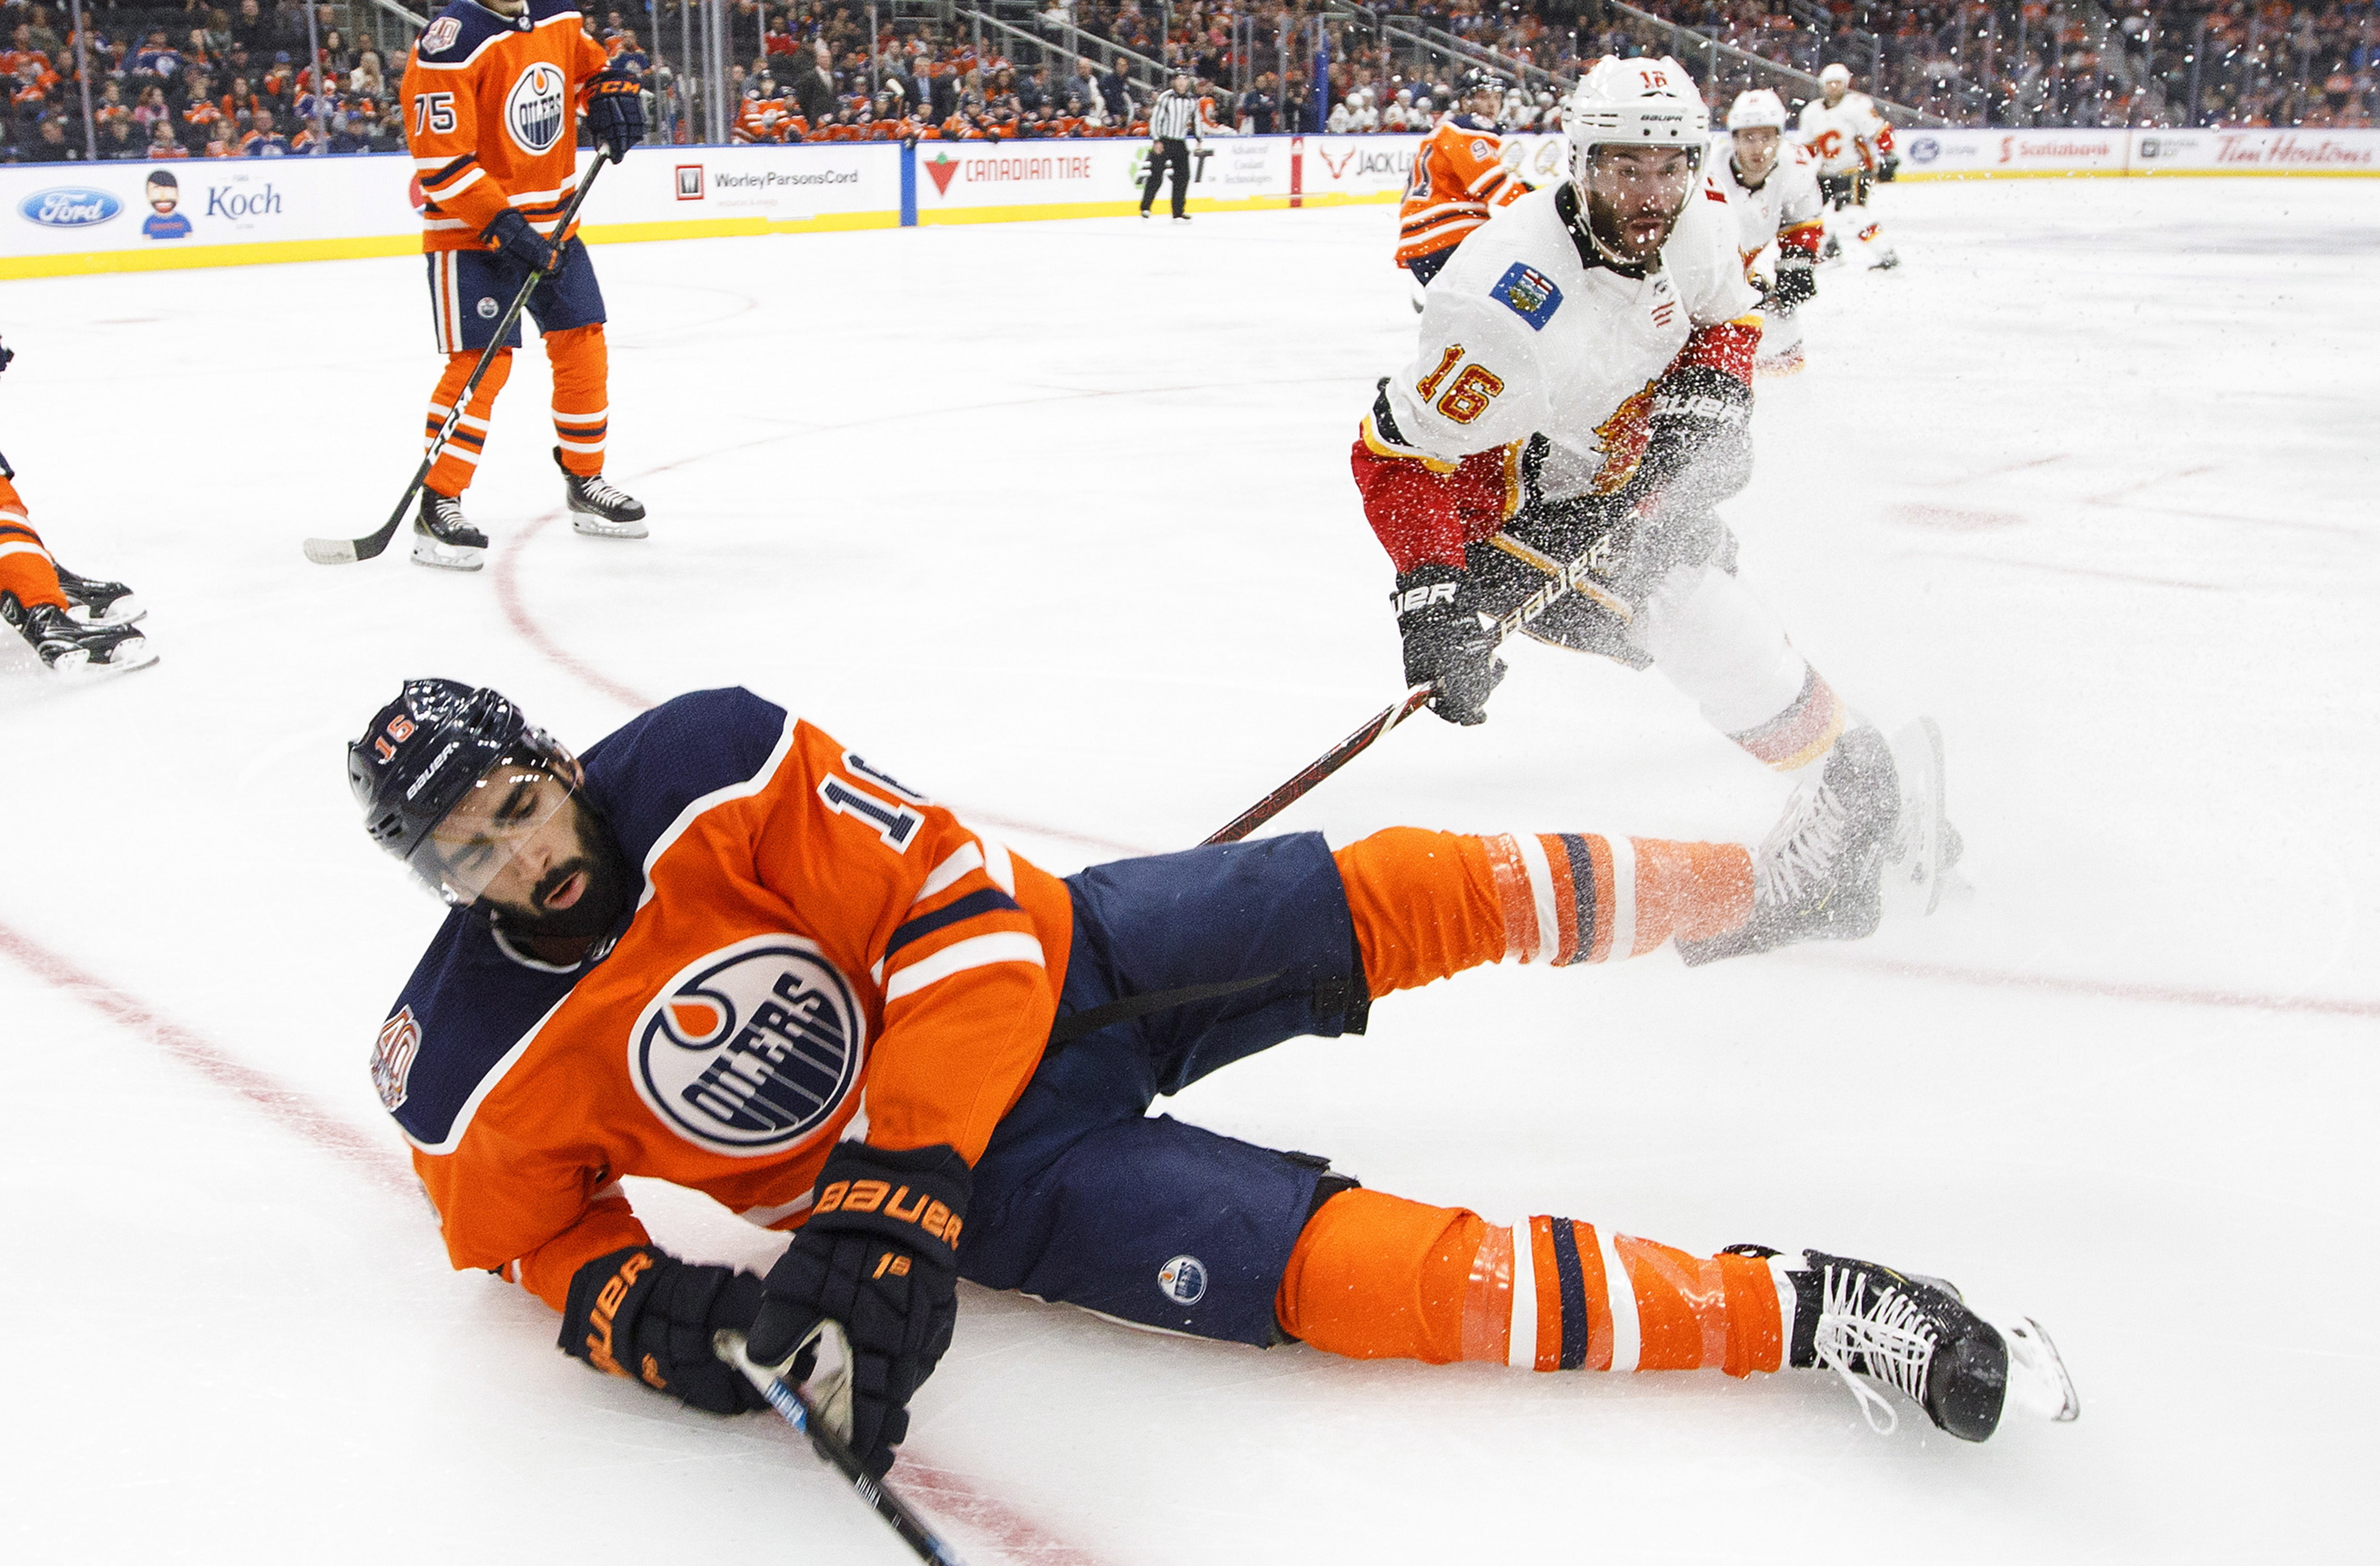 Yamamoto scores twice on 20th birthday, Oilers beat Flames